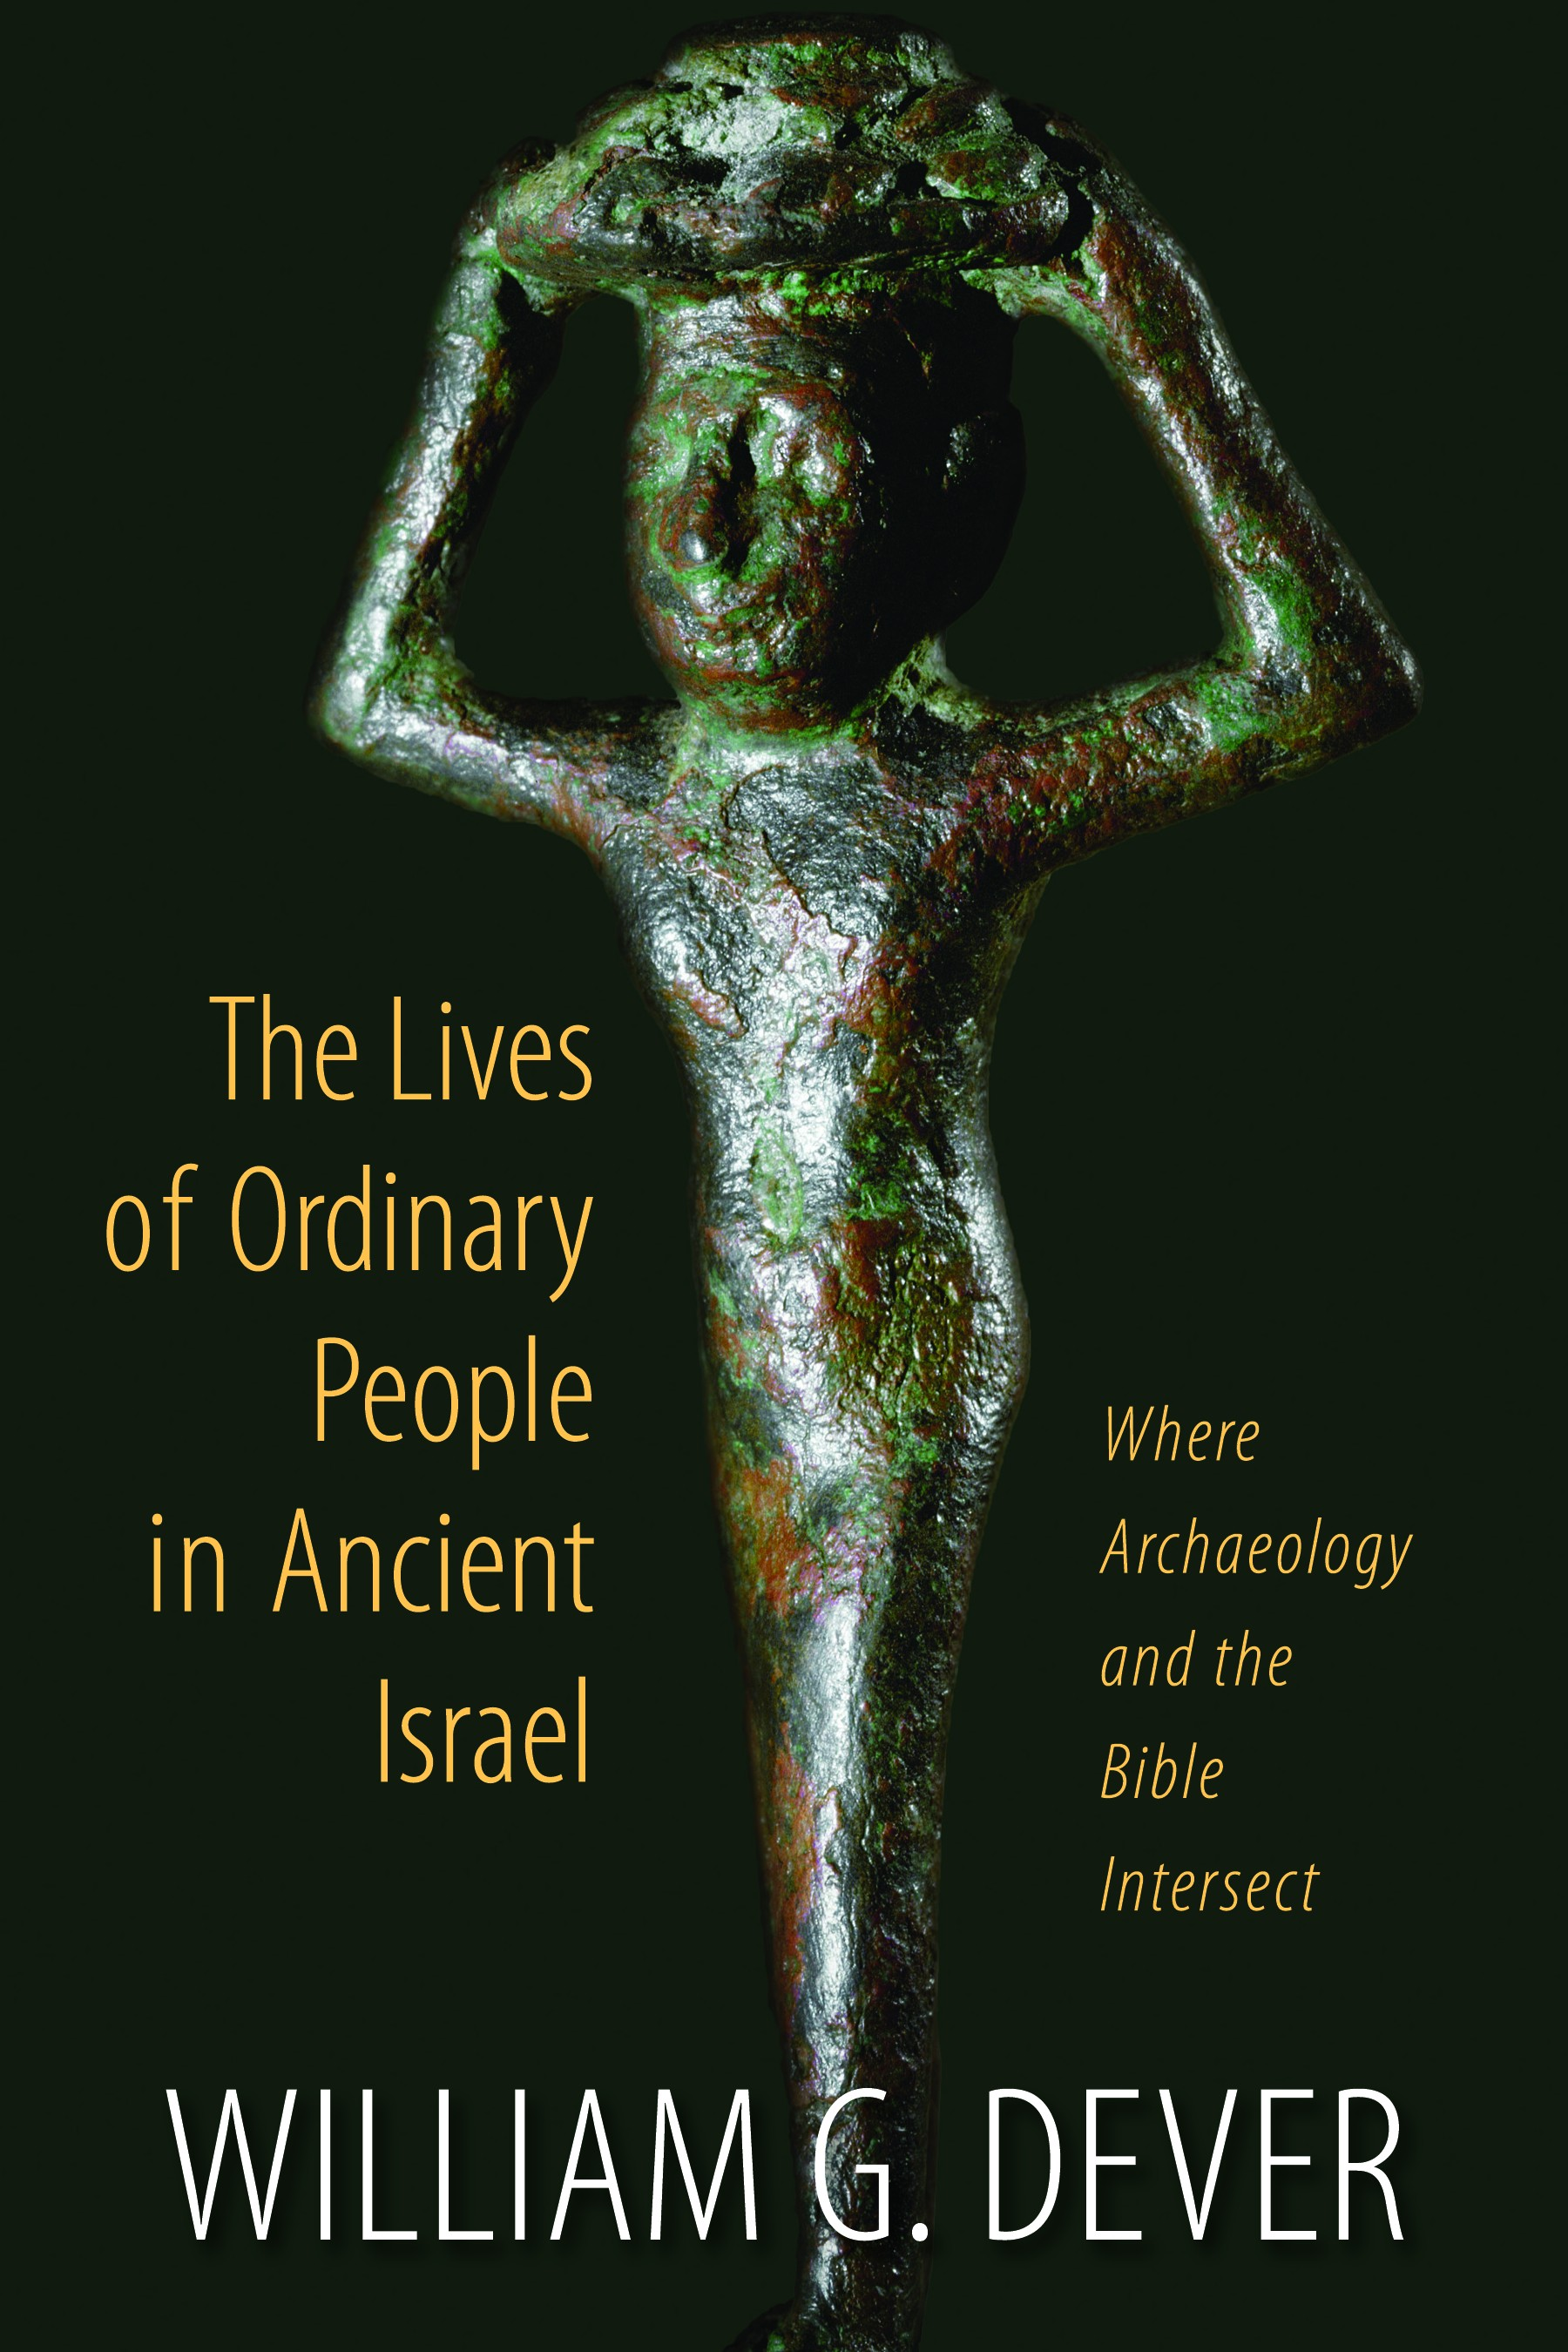 The Lives of Ordinary People in Ancient Israel